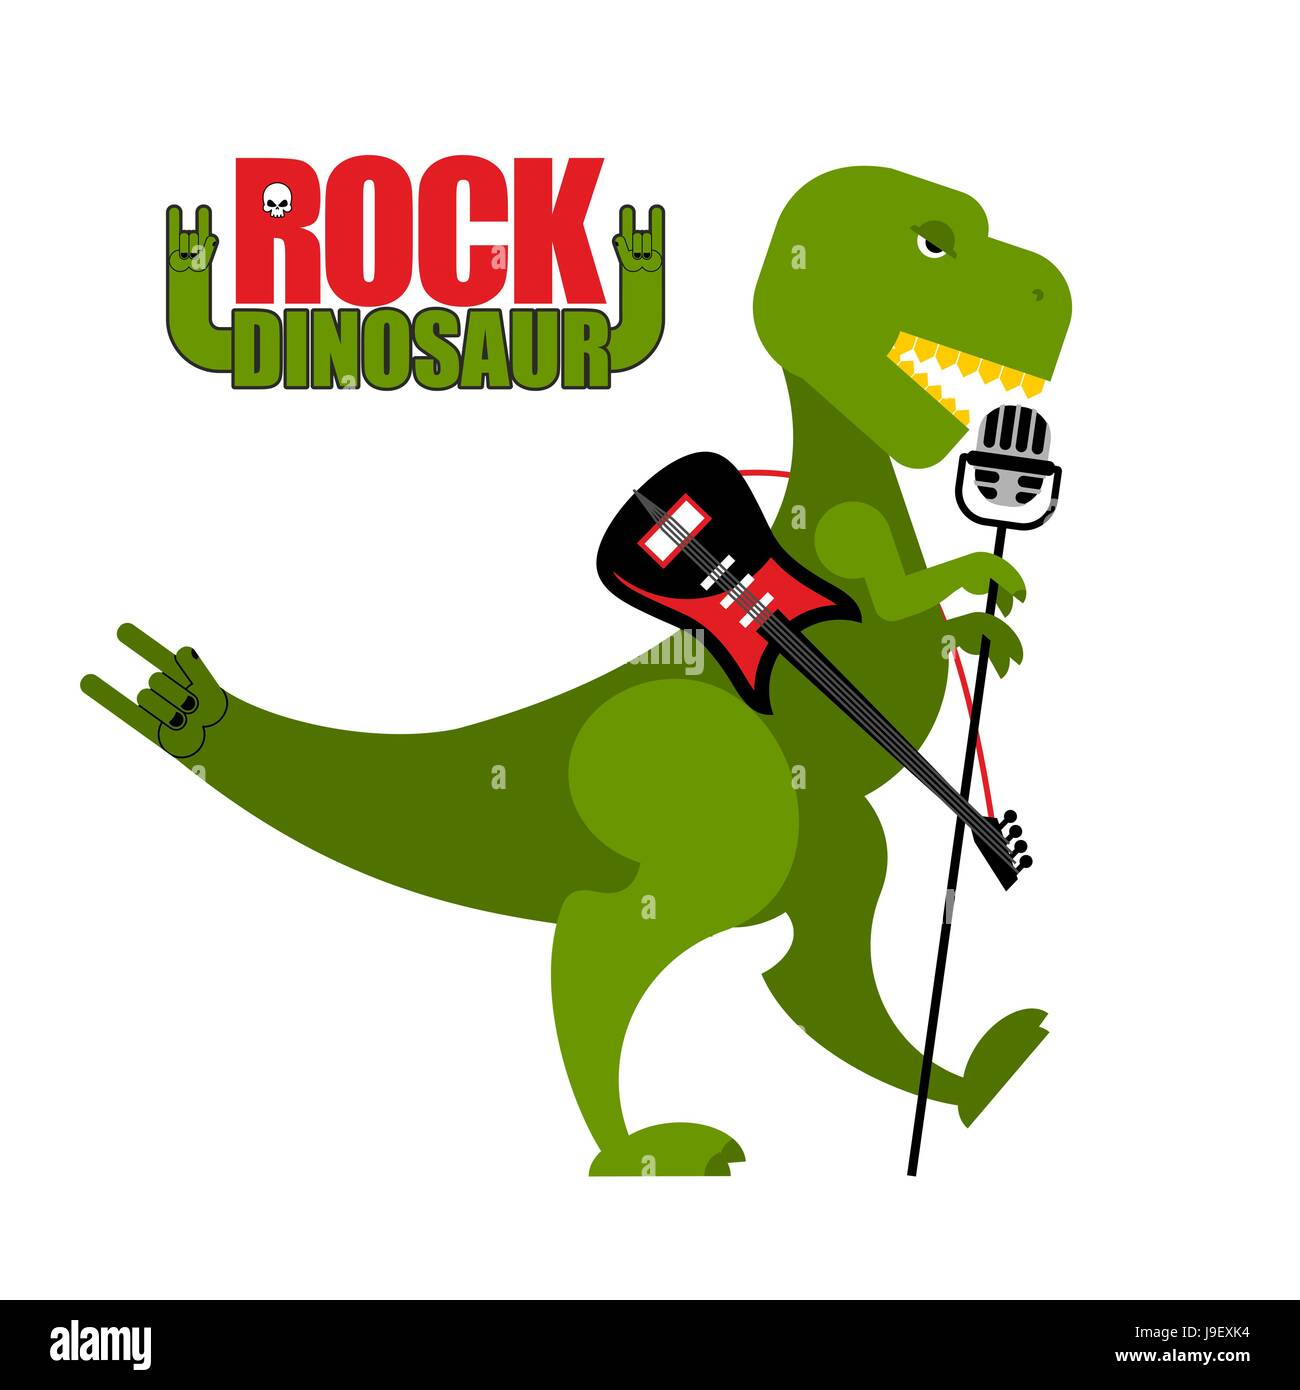 Rock dinosaur. Tyrannosaurus is singing into microphone. Dino T-Rex with an electric guitar. Green toothy Monster - Stock Vector